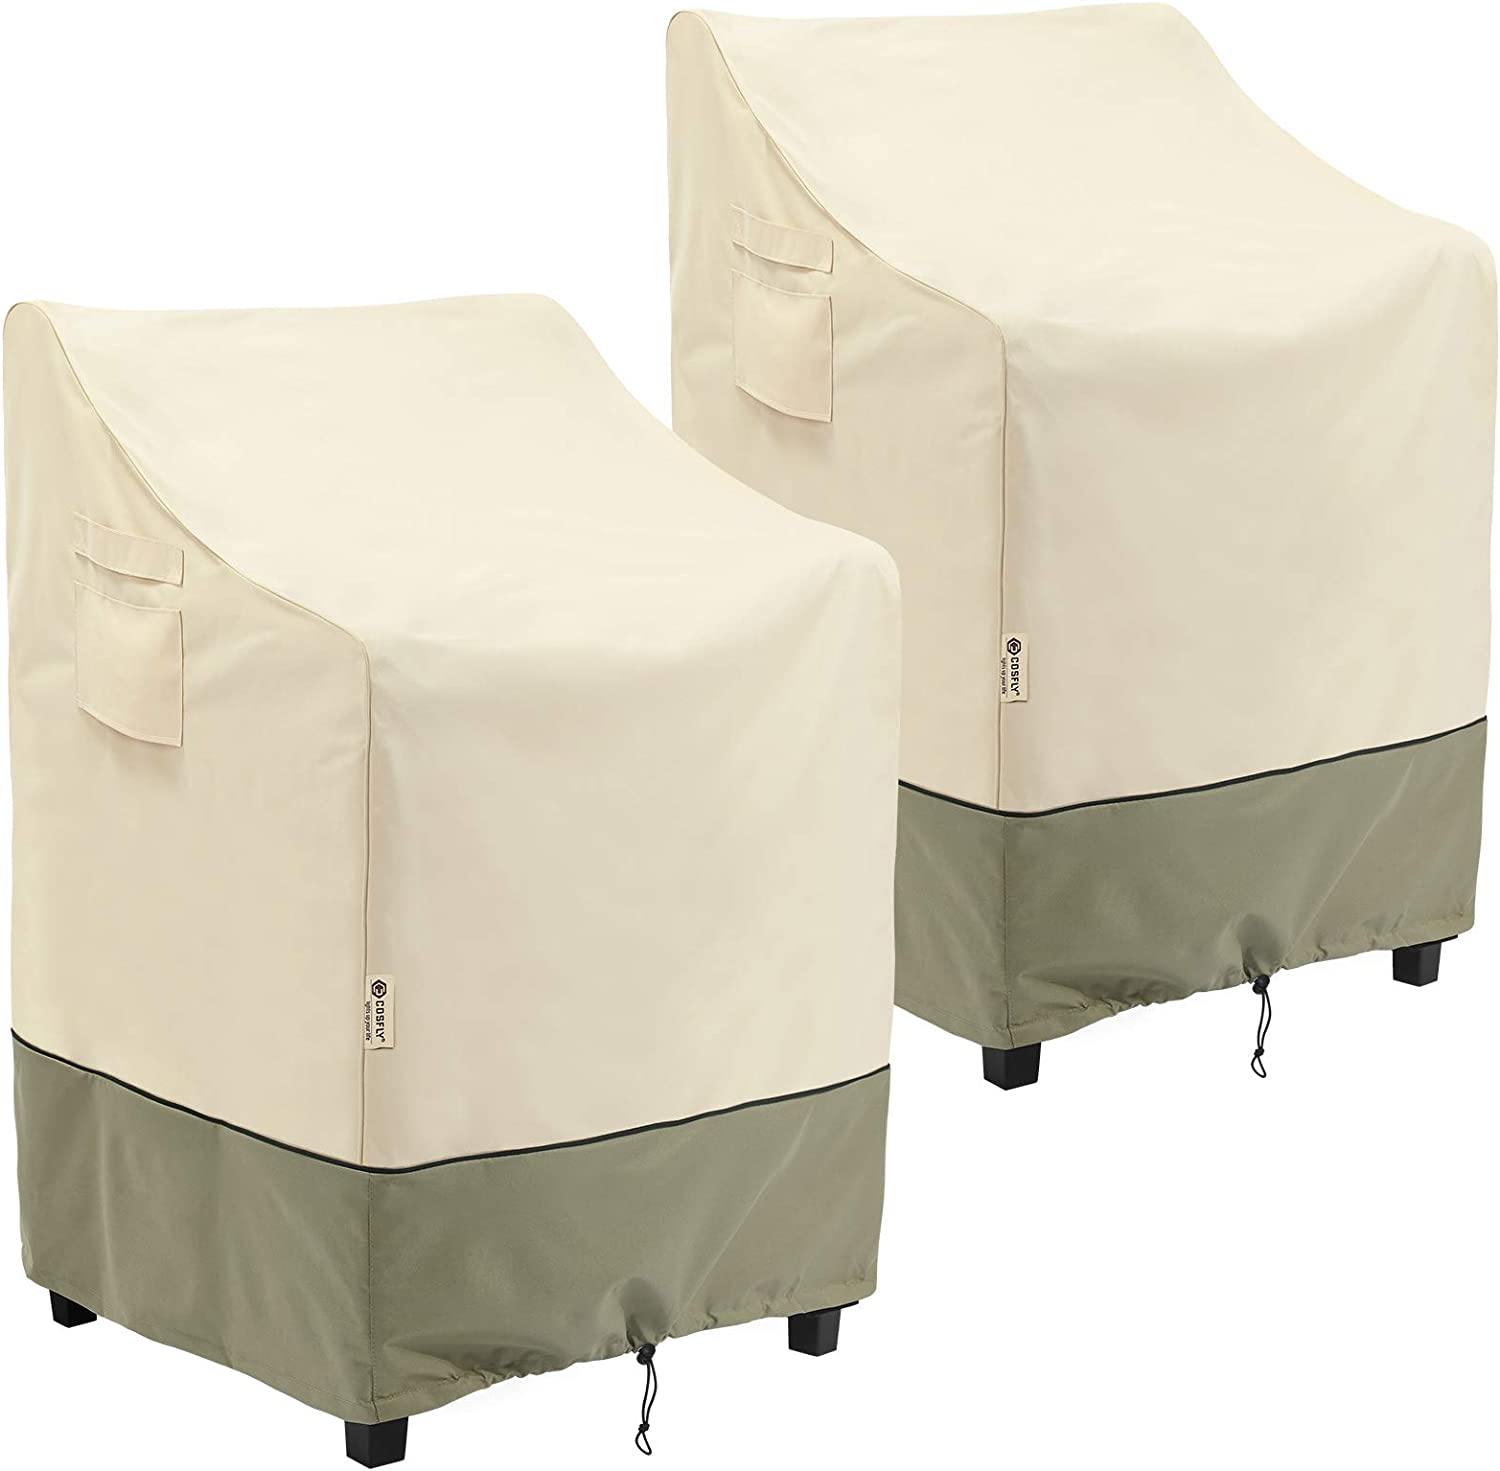 Outdoor Furniture Patio Stackable Chair Covers Waterproof Clearance, Lounge Deep Seat Cover, Lawn Furnitures Covers Fits up to 36W x 28D x 47H inches(2 Pack)